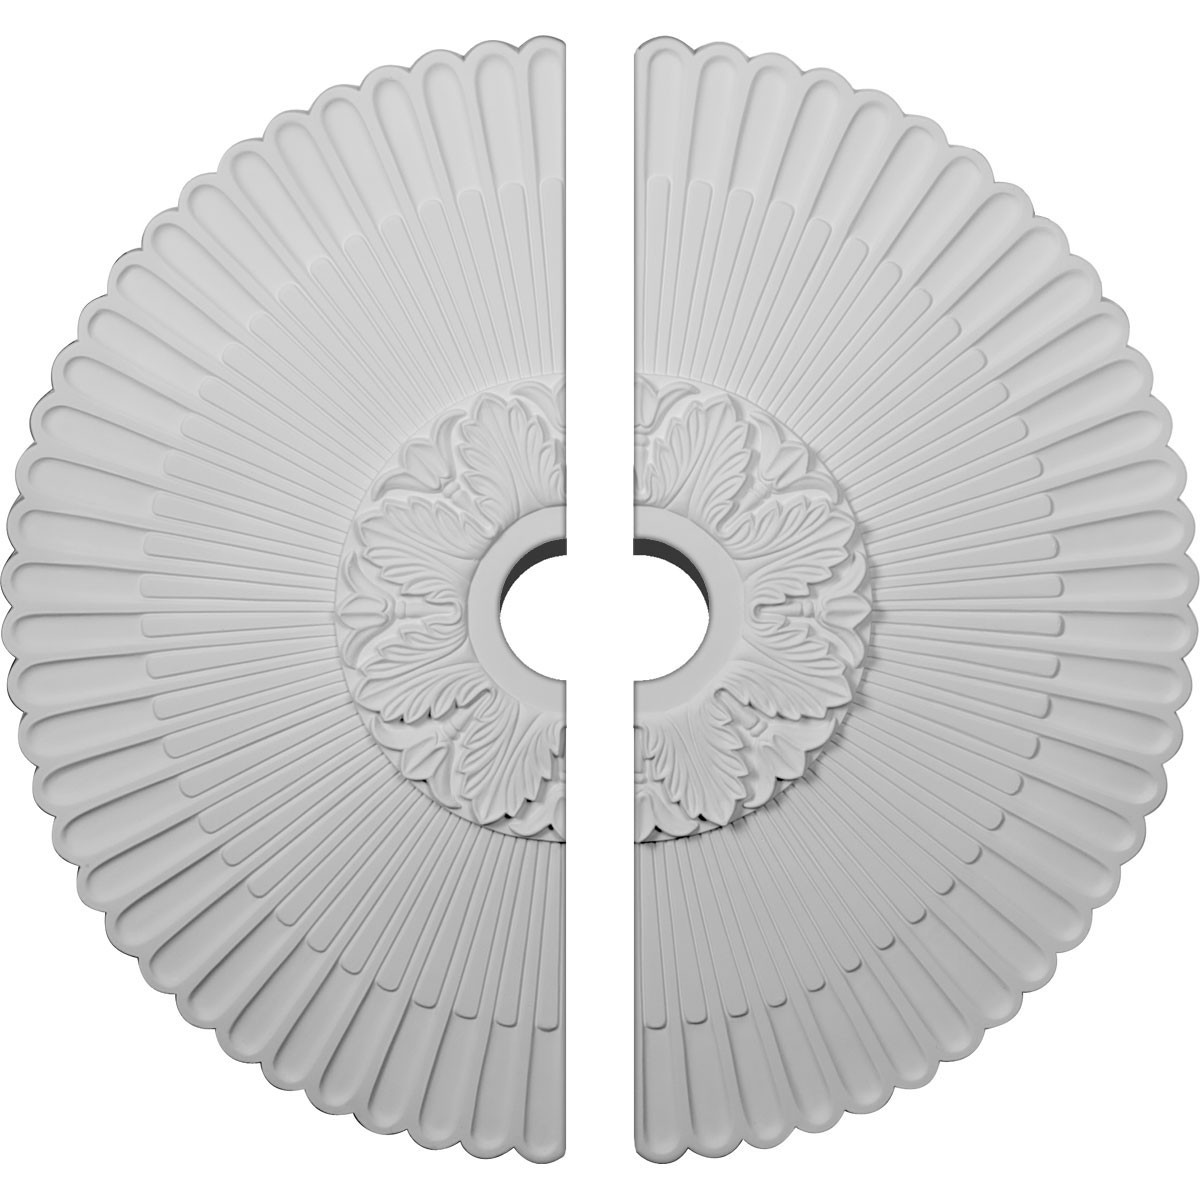 """EM-CM36ME2-04000 - 36 1/4""""OD x 4""""ID x 1 7/8""""P Melonie Ceiling Medallion, Two Piece (Fits Canopies up to 6 1/4"""")"""